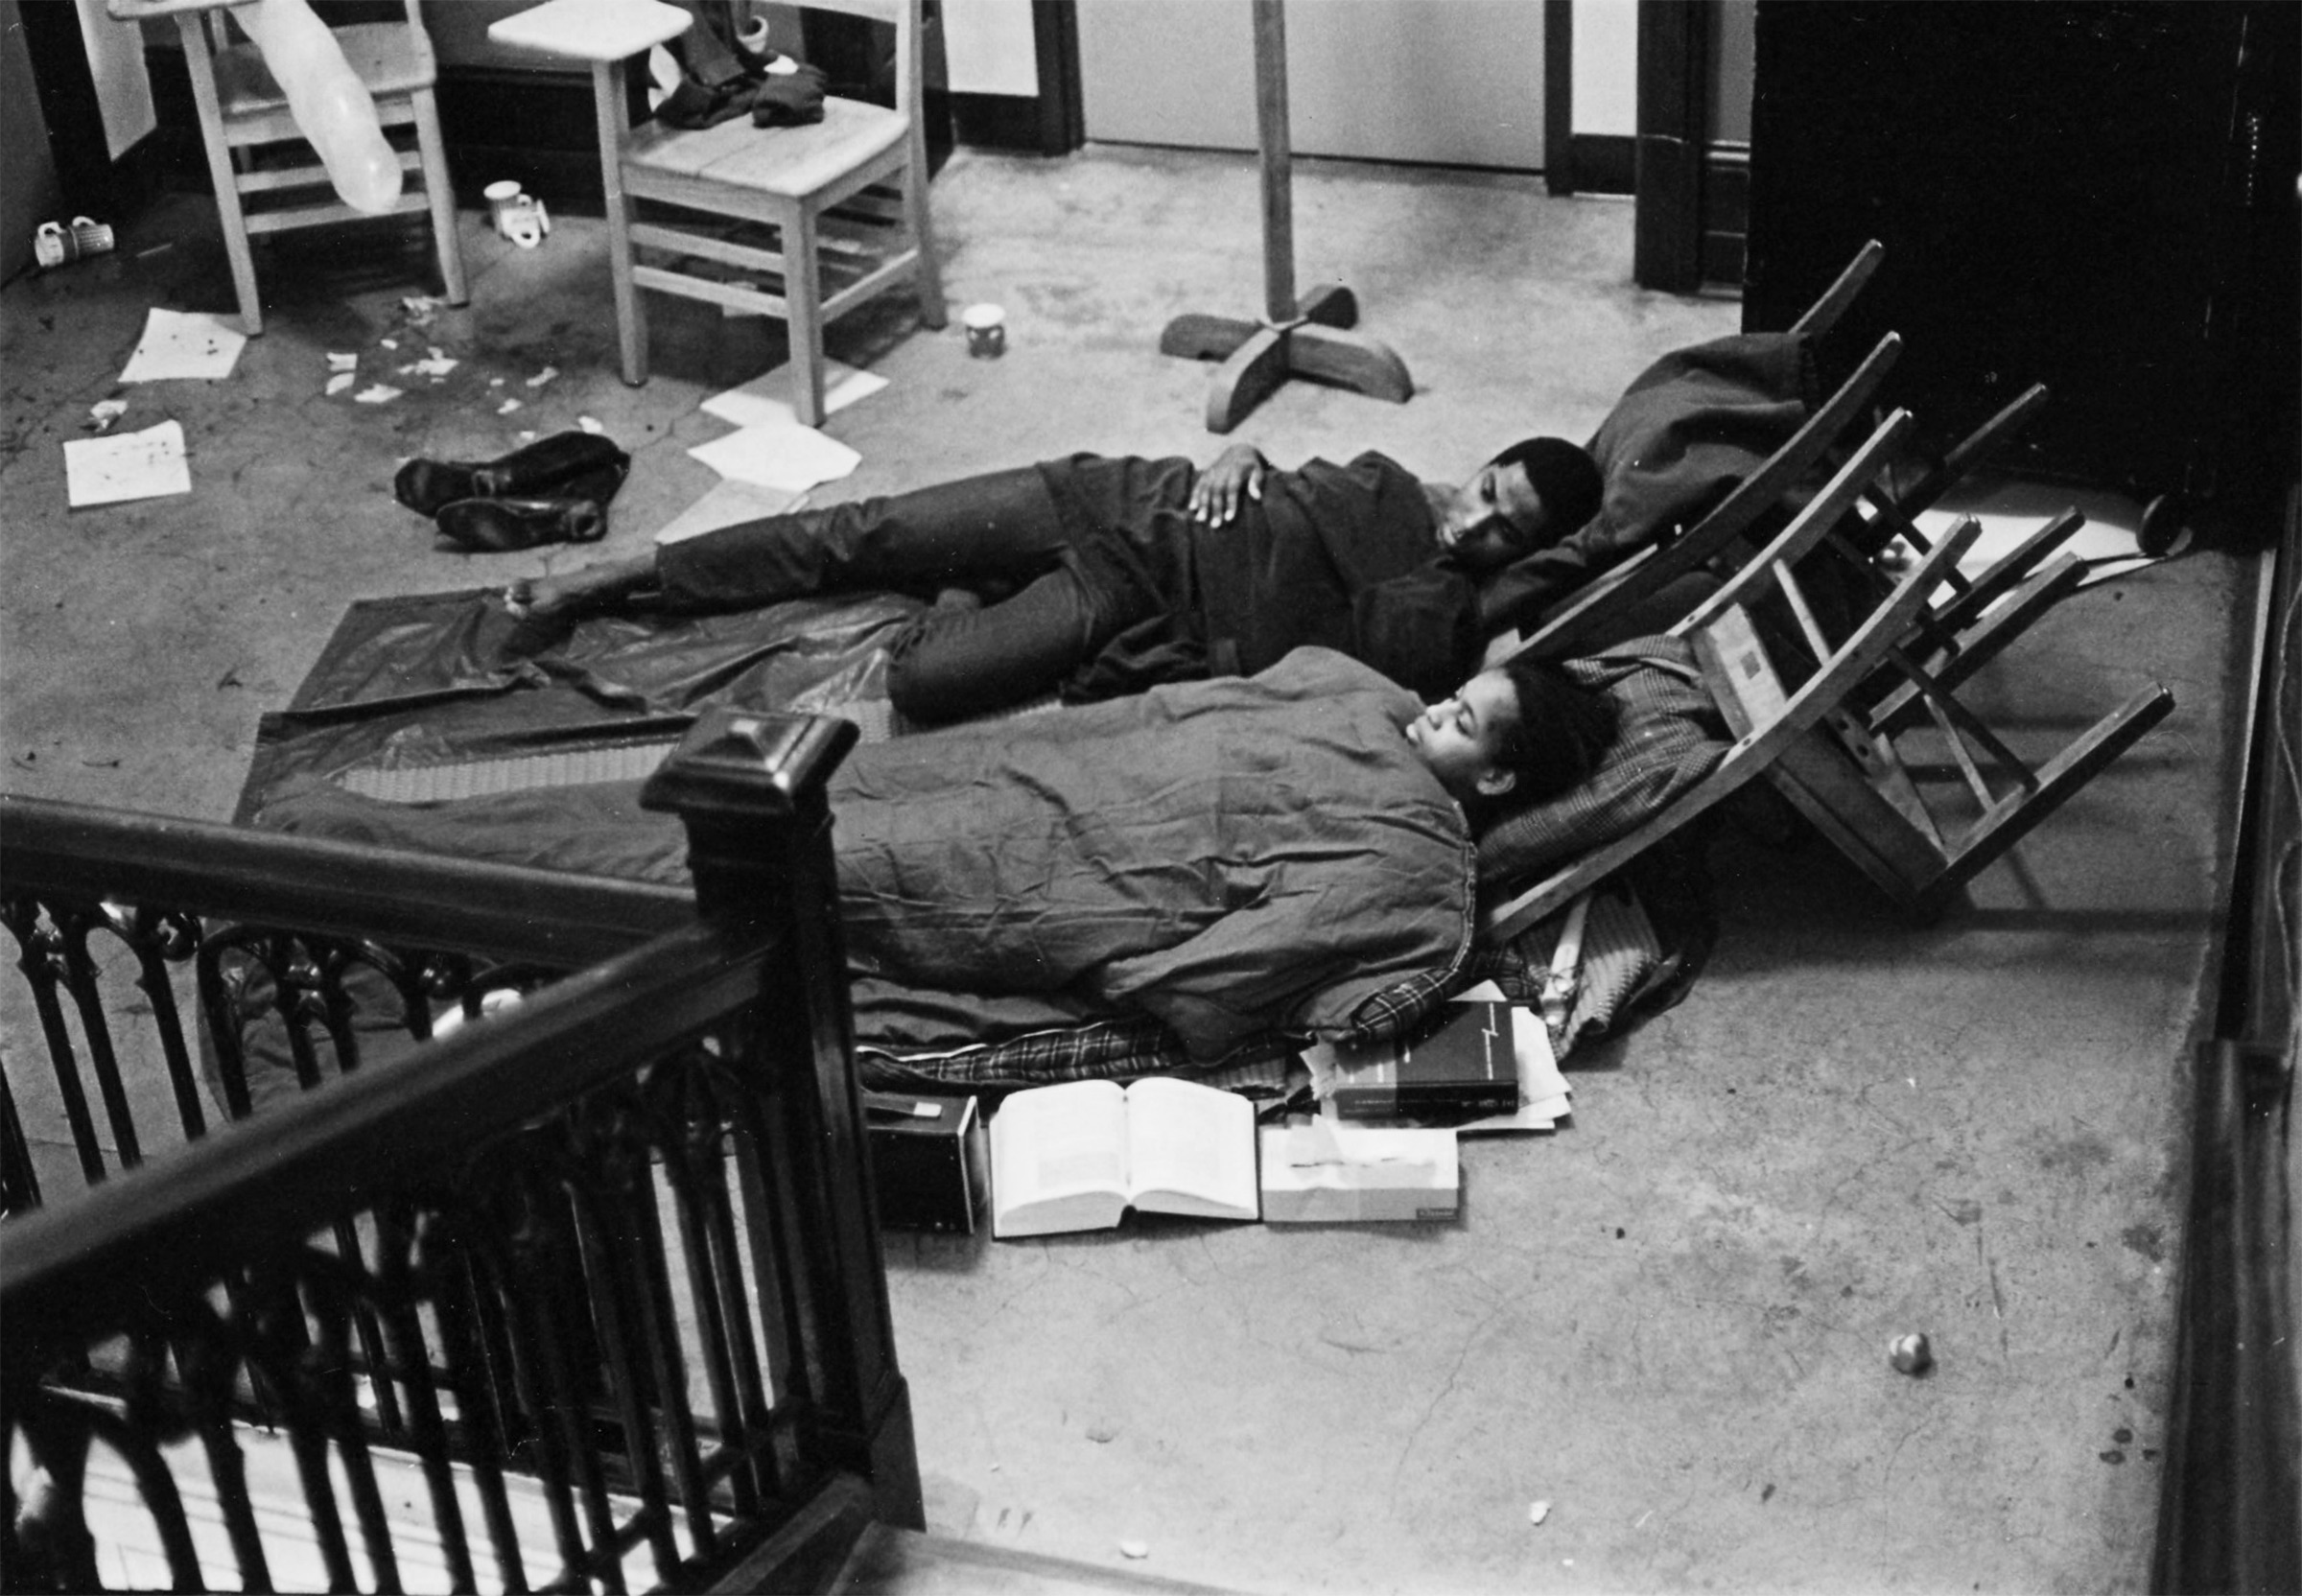 Members of the Black Student Union in sleeping bags in Eliot Hall during the BSU takeover of the administrative offices in 1968 courtesy of Special Collections, Eric V. Hauser Memorial Library, Reed College.